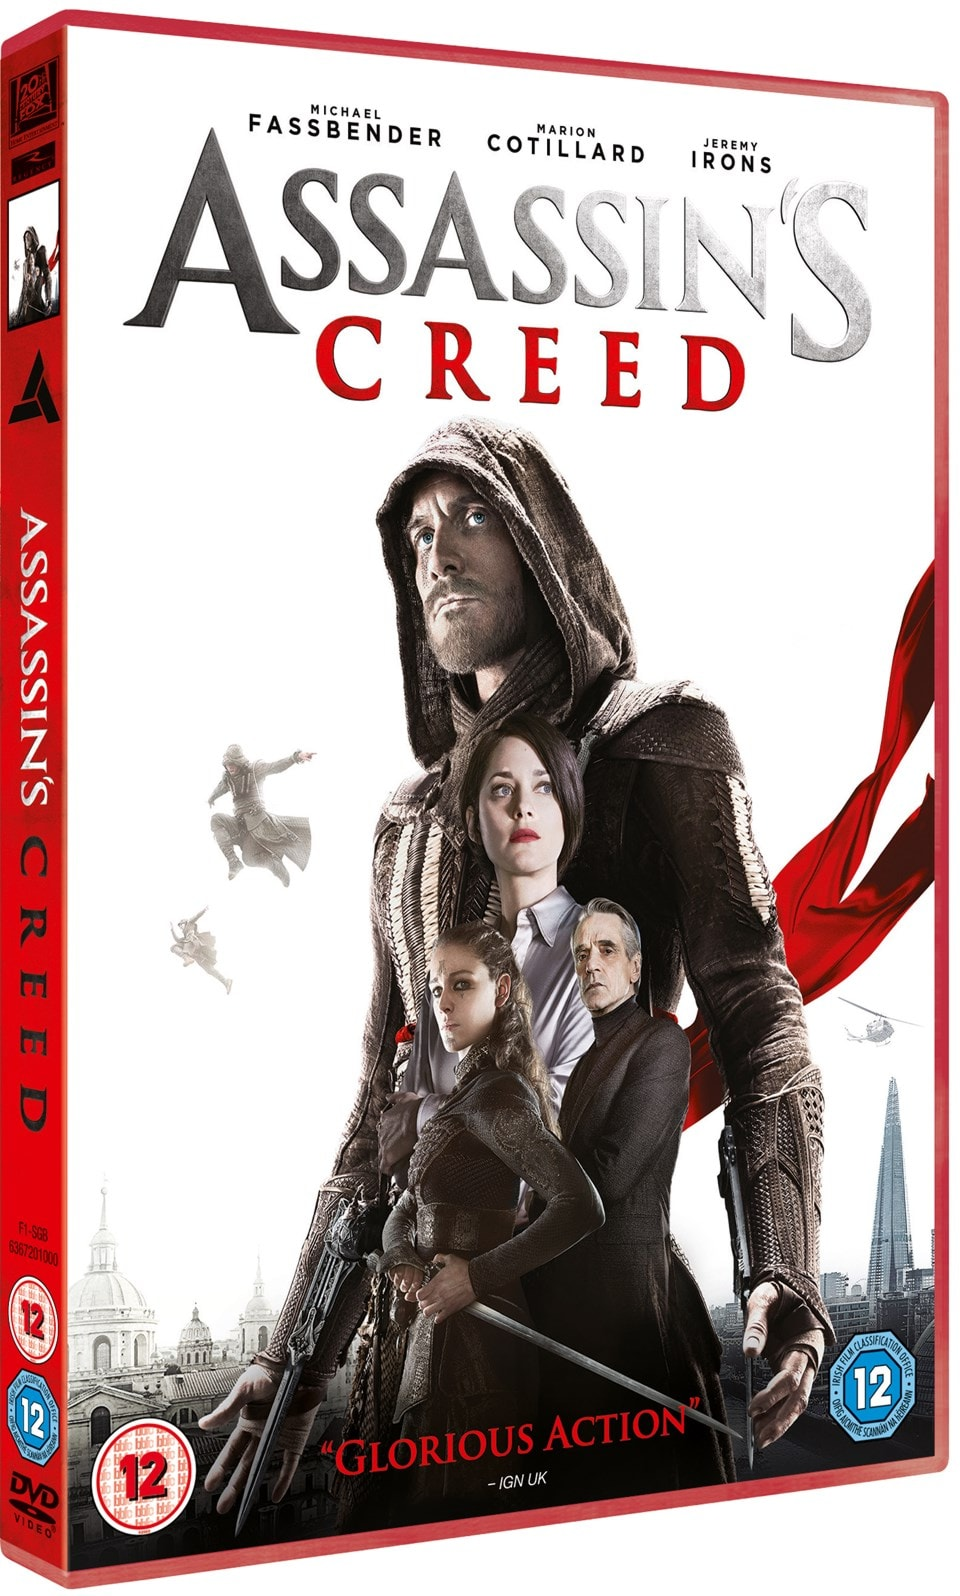 Assassin's Creed - 2